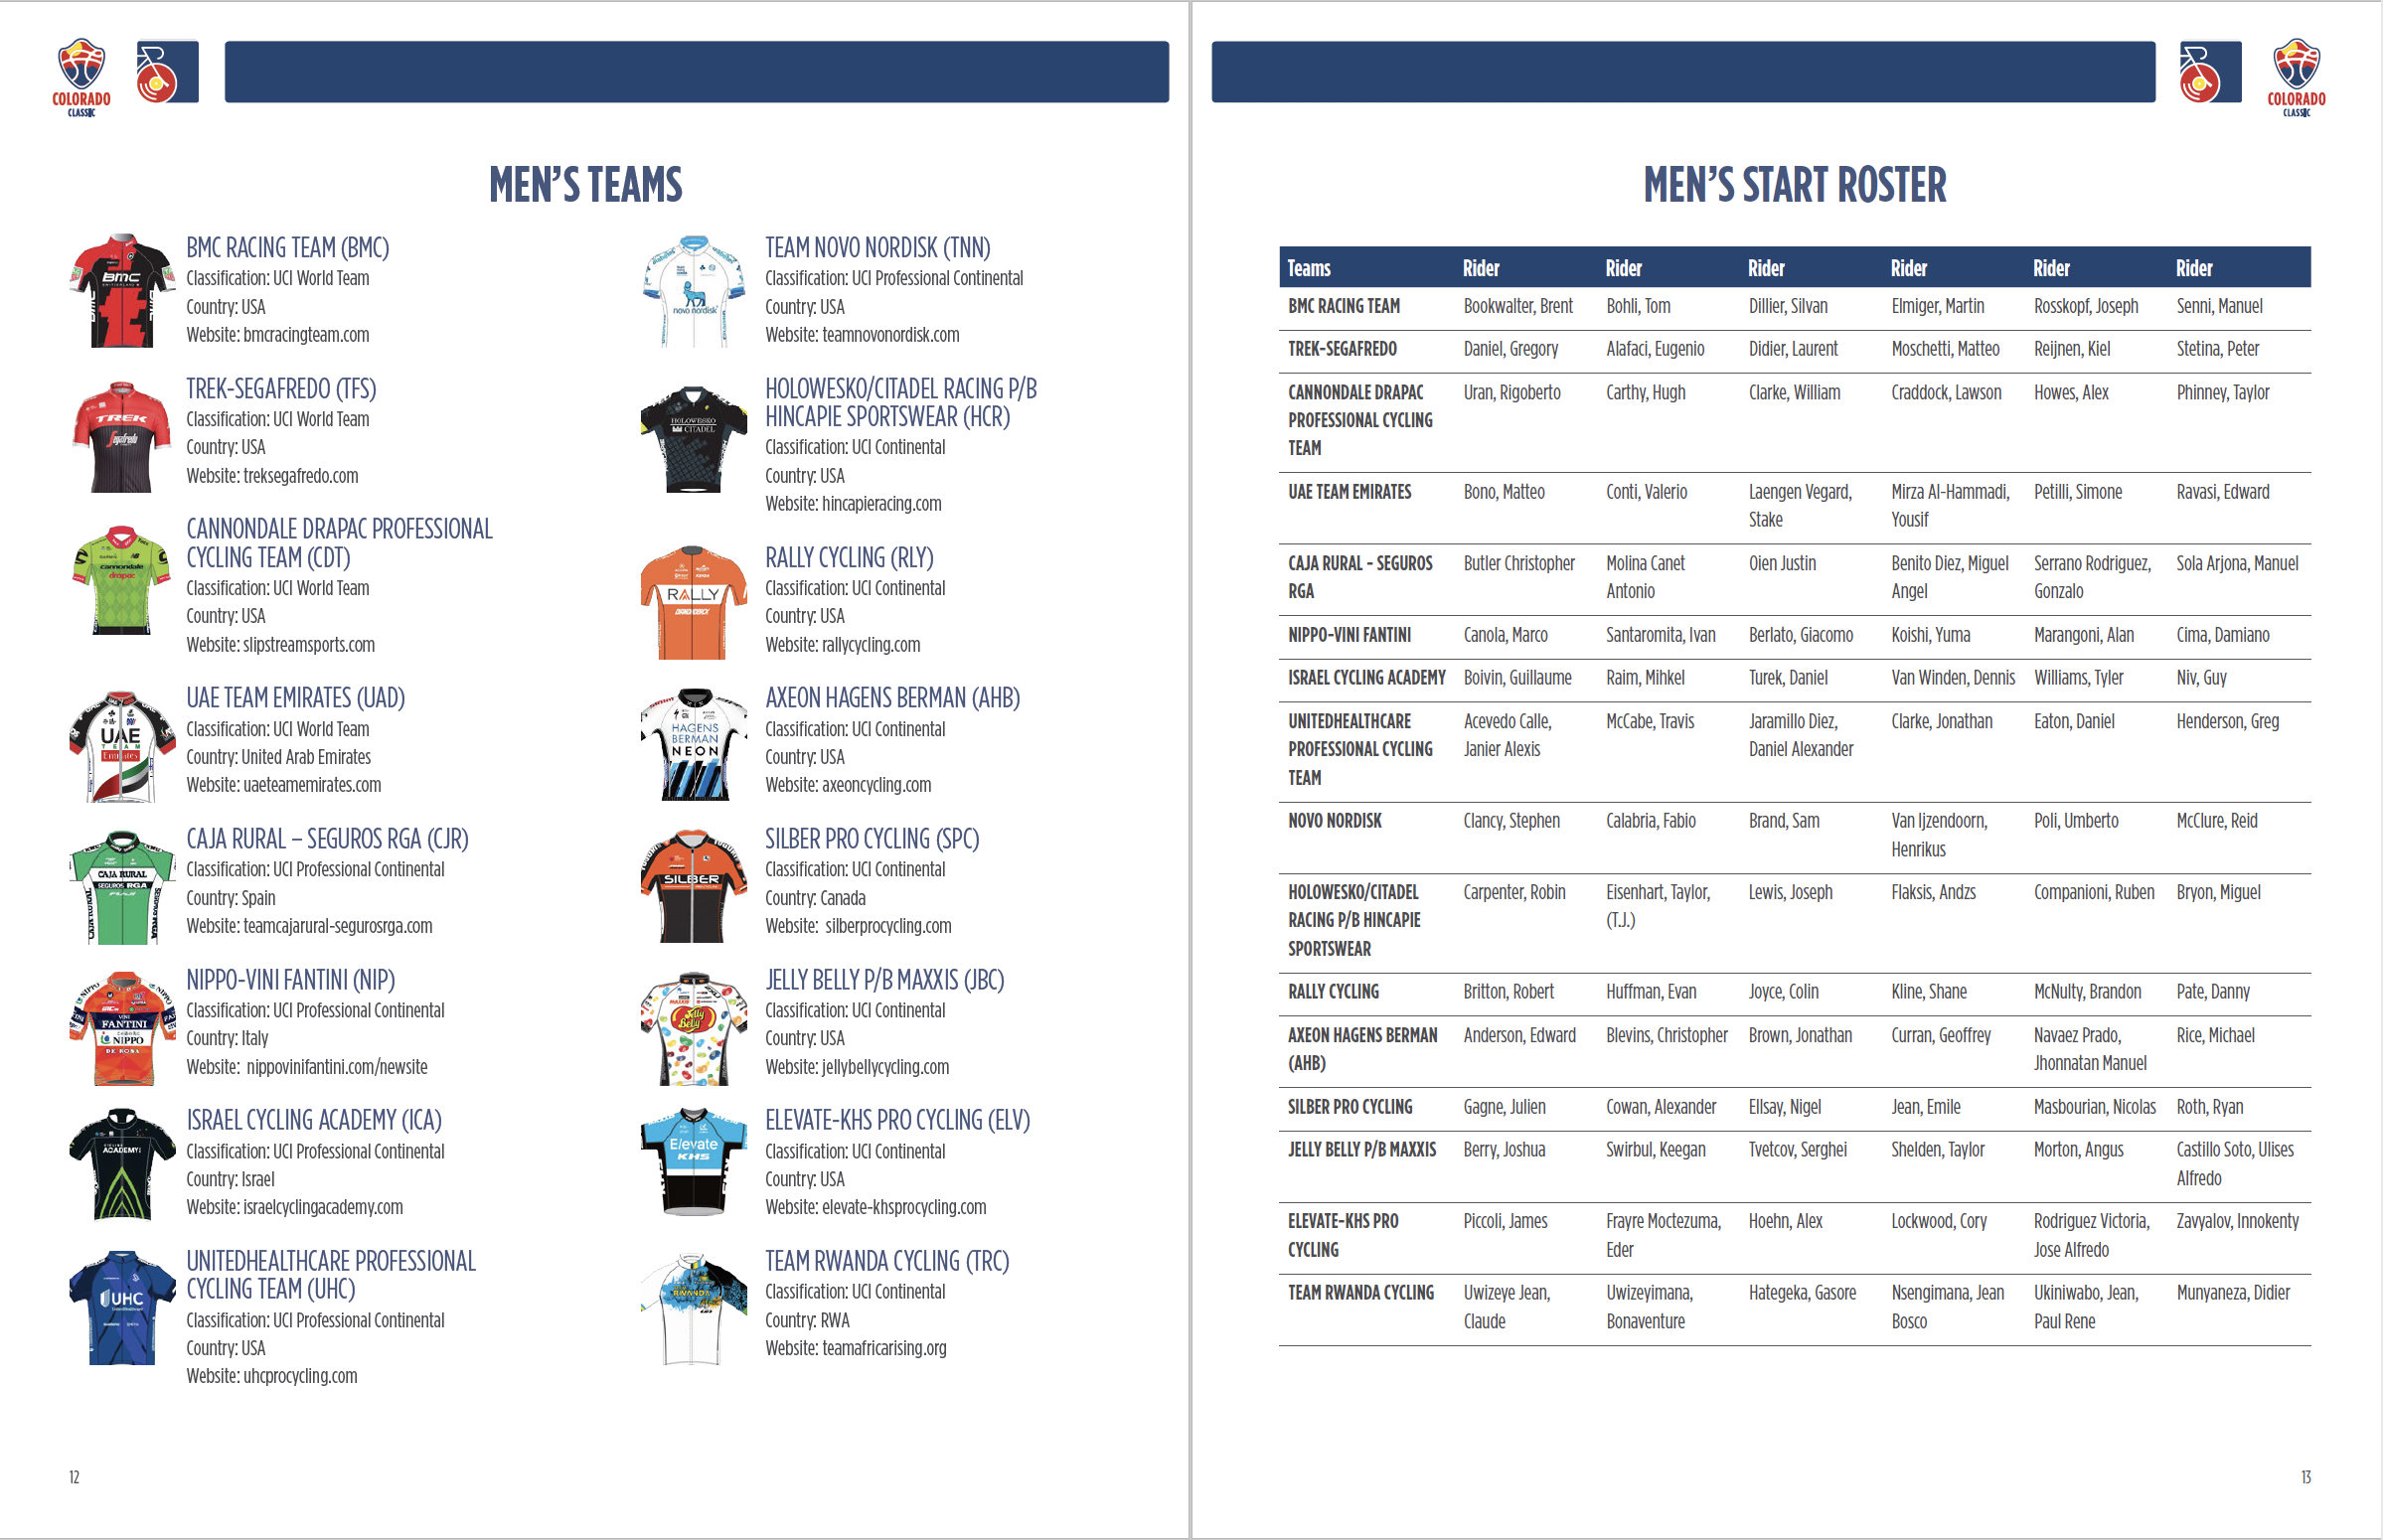 Media guide spread with images and tables